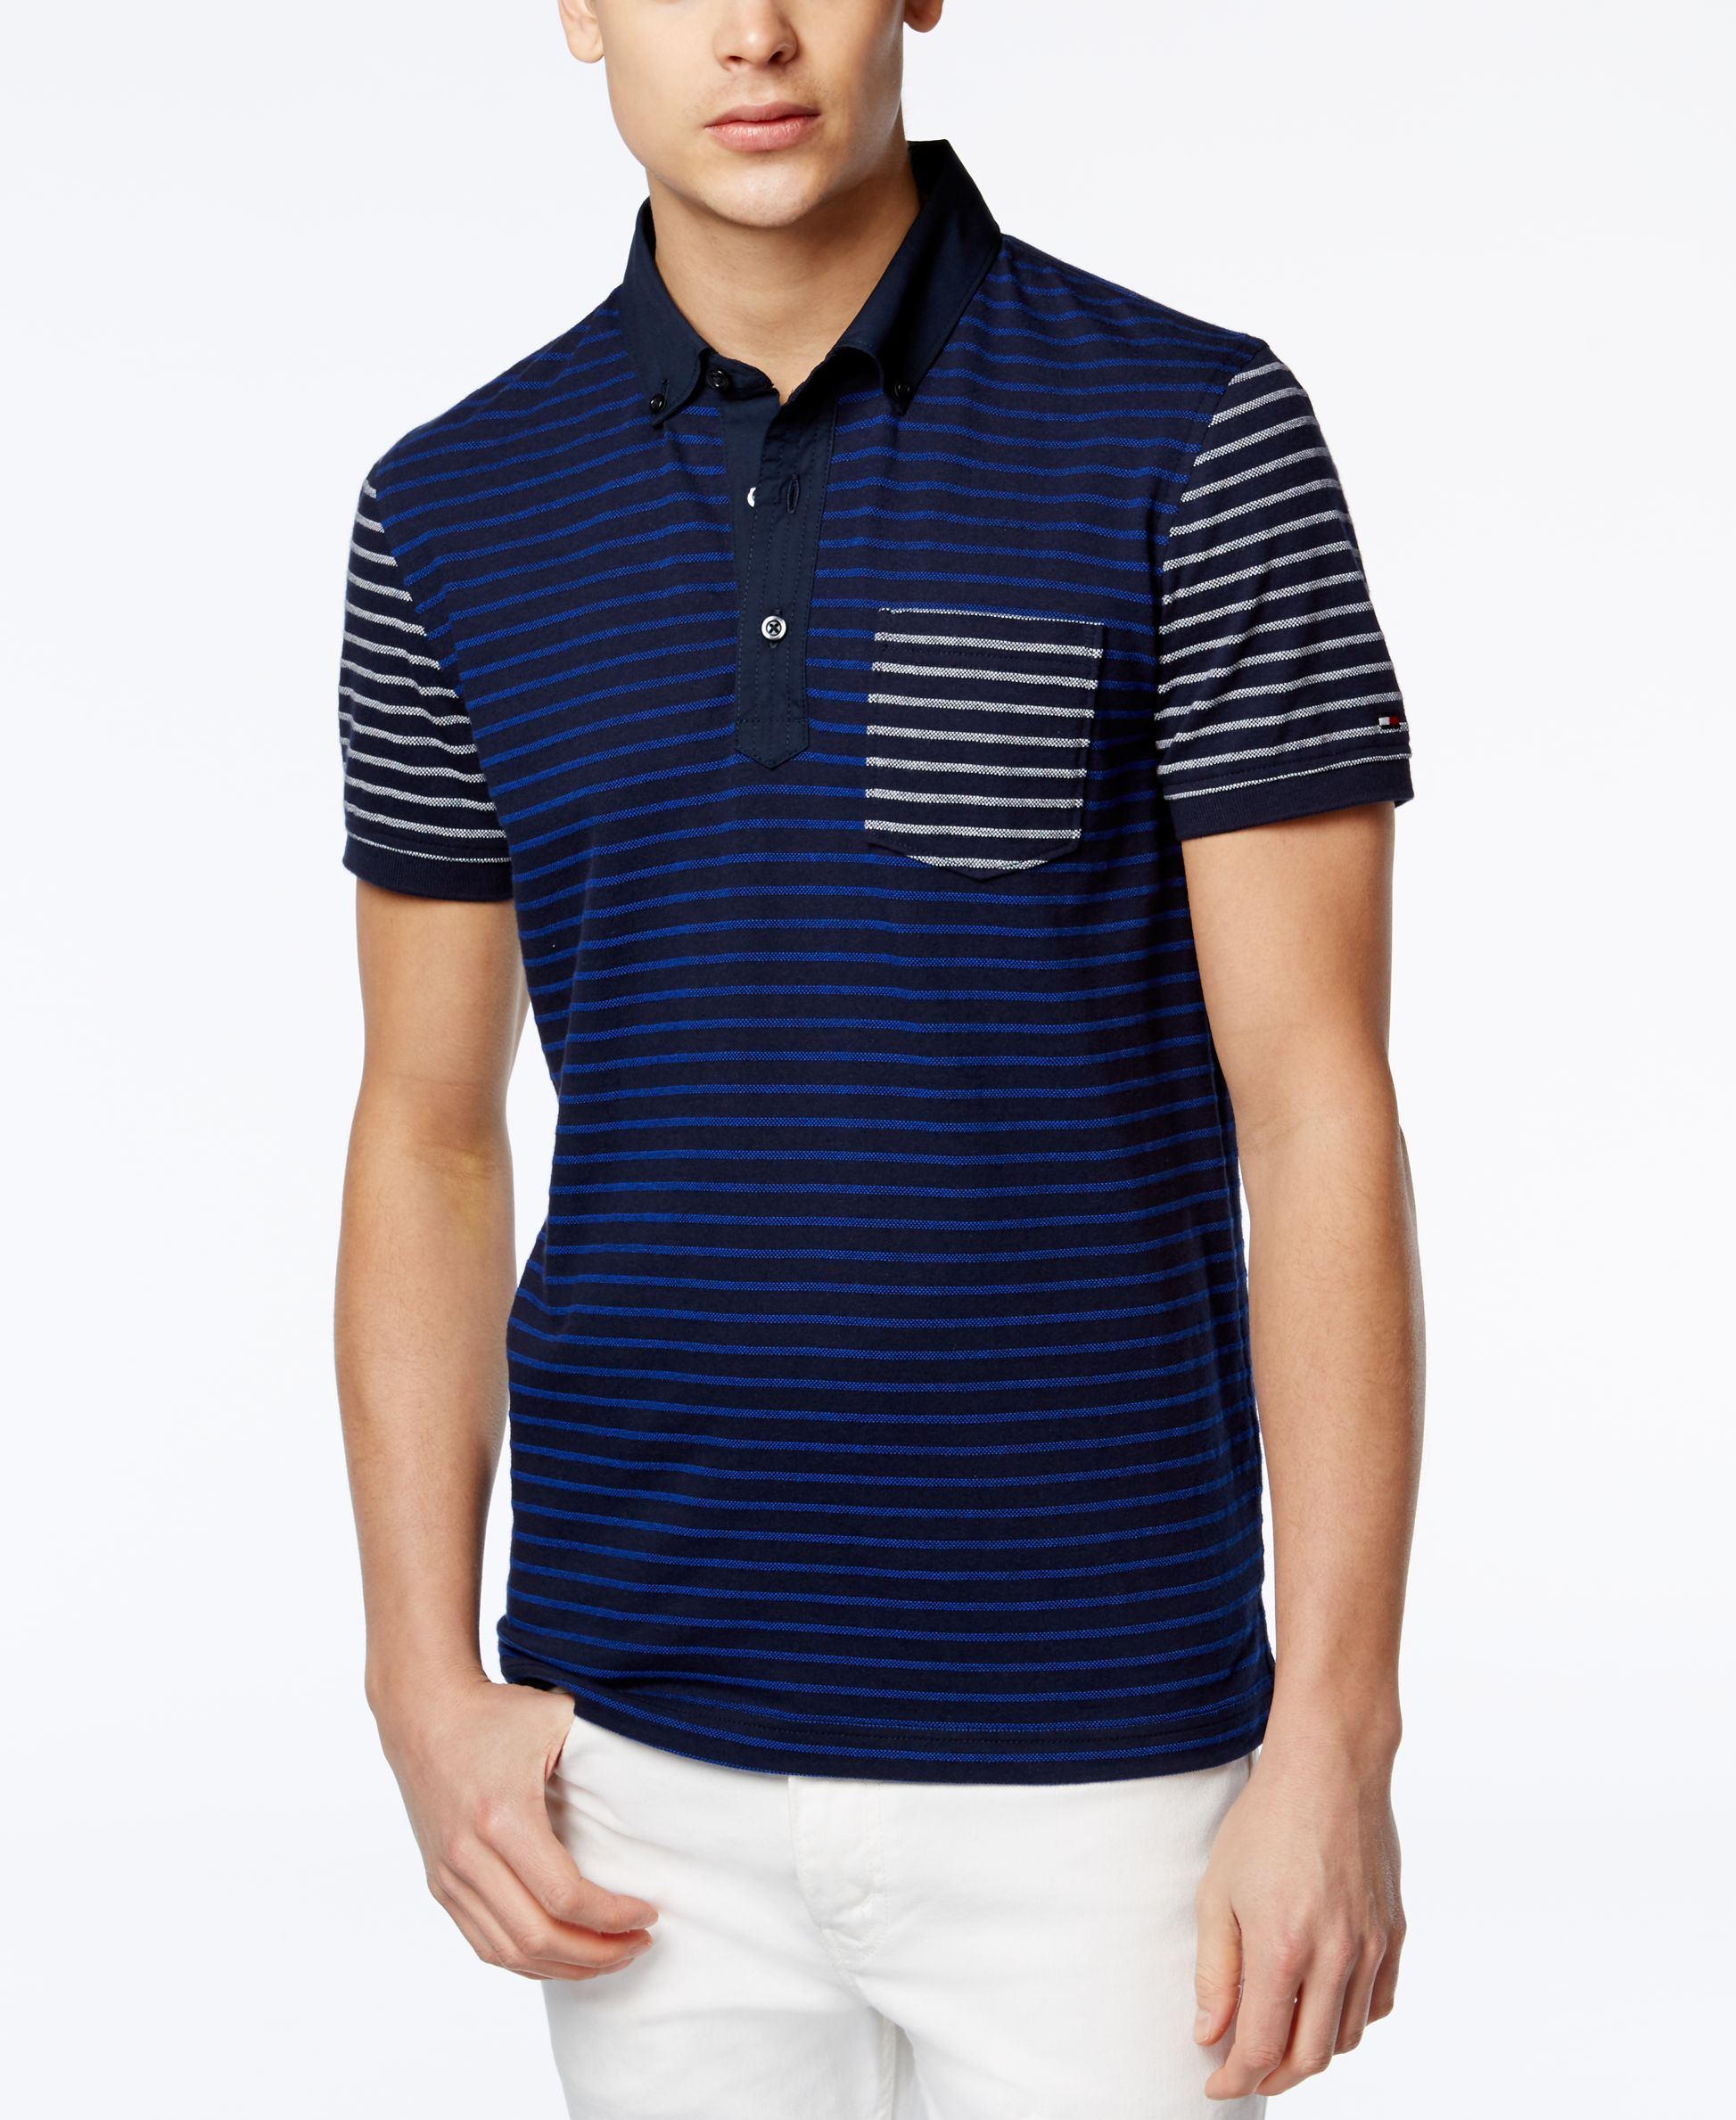 019dcf47 Best Designer Polo Shirts: Tommy Hilfiger. Bently Polo Shirt. | Follow  rickysturn/mens-fashion for more men's fashion trends & tips